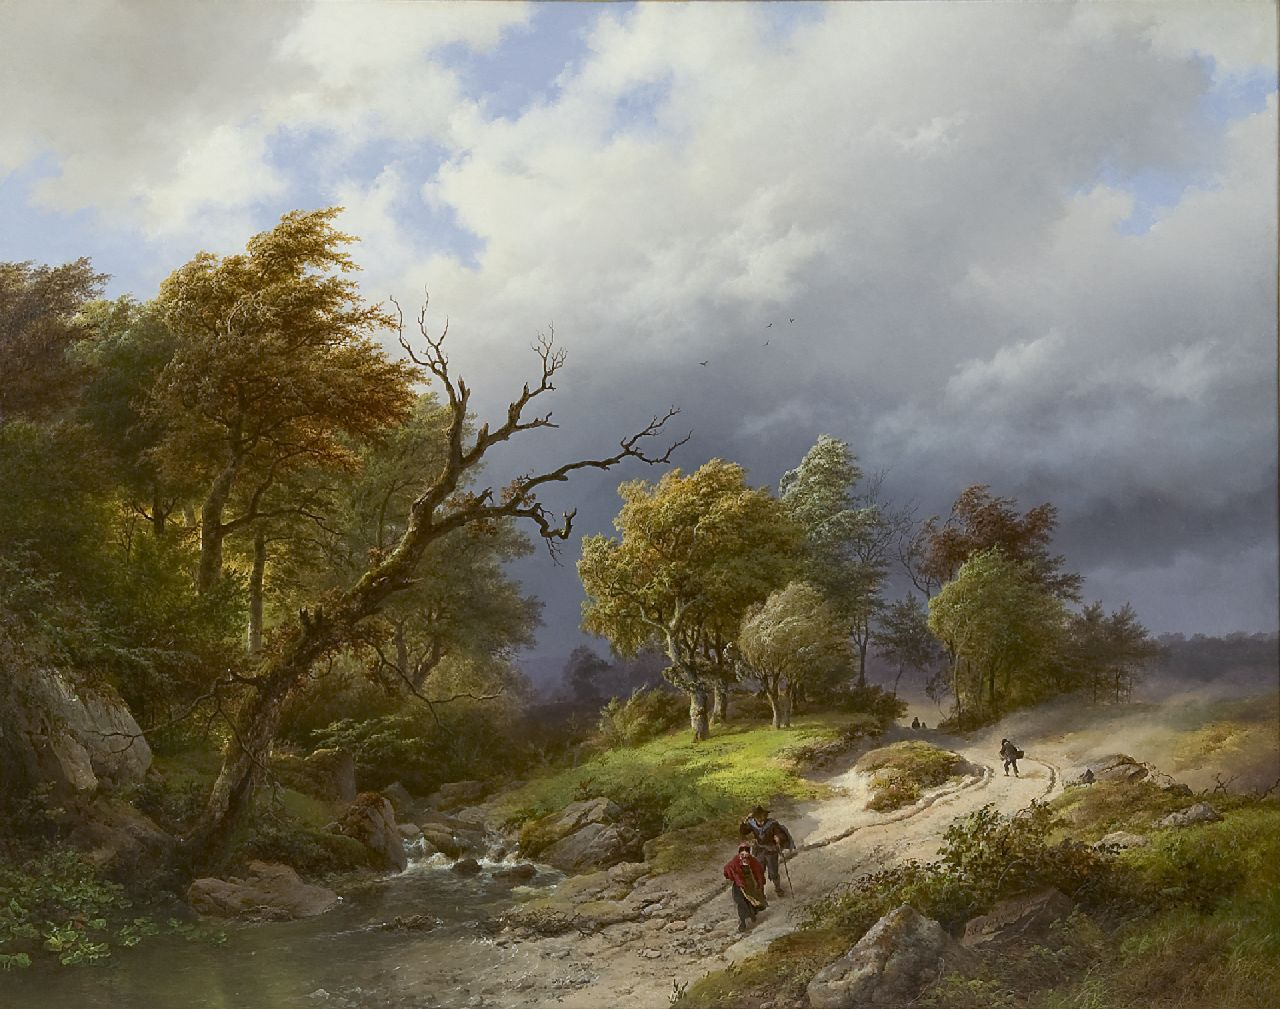 Koekkoek B.C.  | Barend Cornelis Koekkoek, Upcoming storm, oil on panel 65.5 x 83.7 cm, signed l.r. and dated 1843